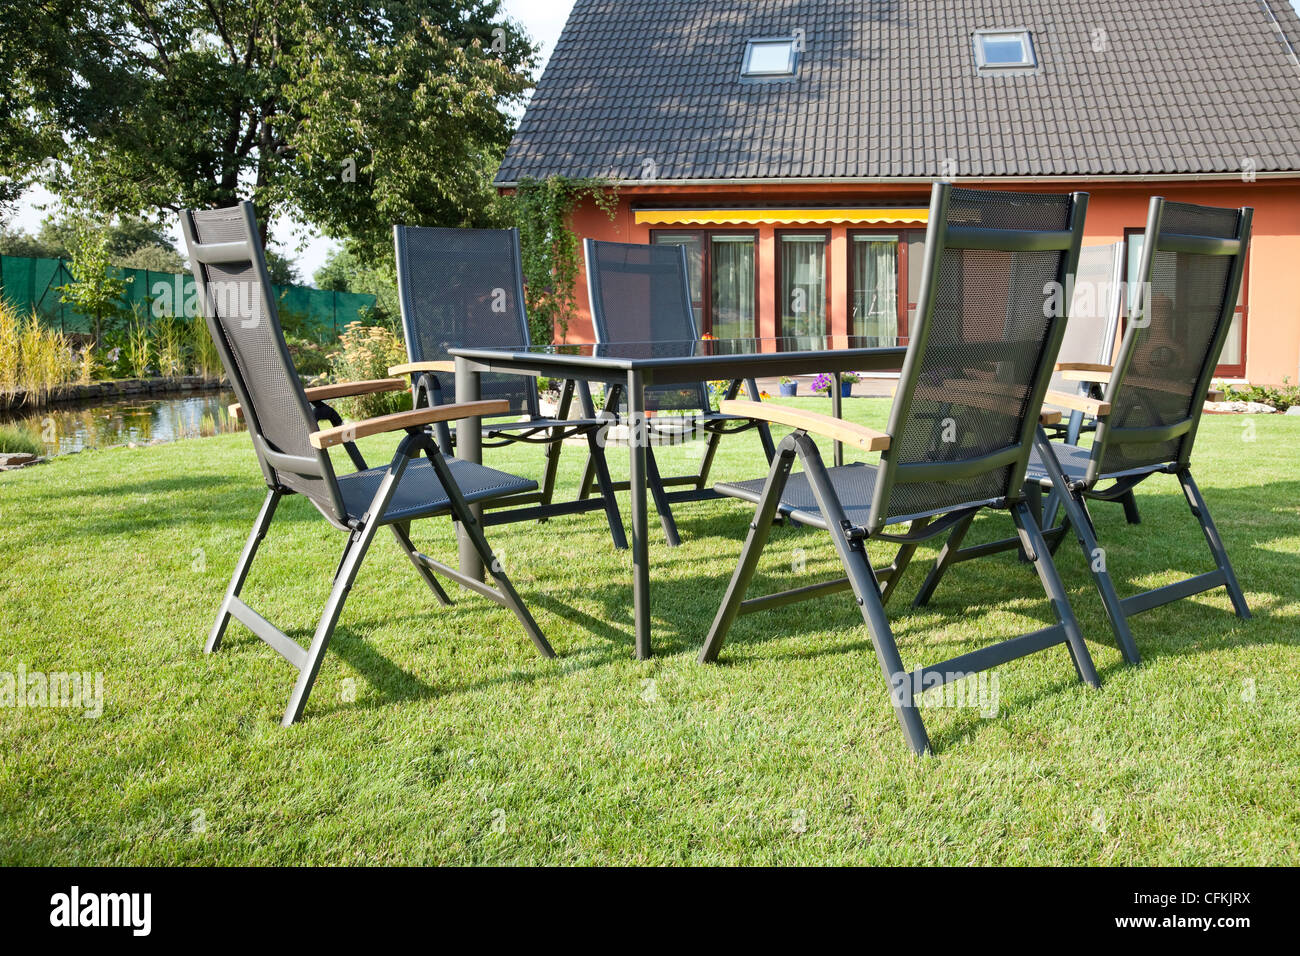 The Metal Garden Furniture By The House And The Pool   Stock Image